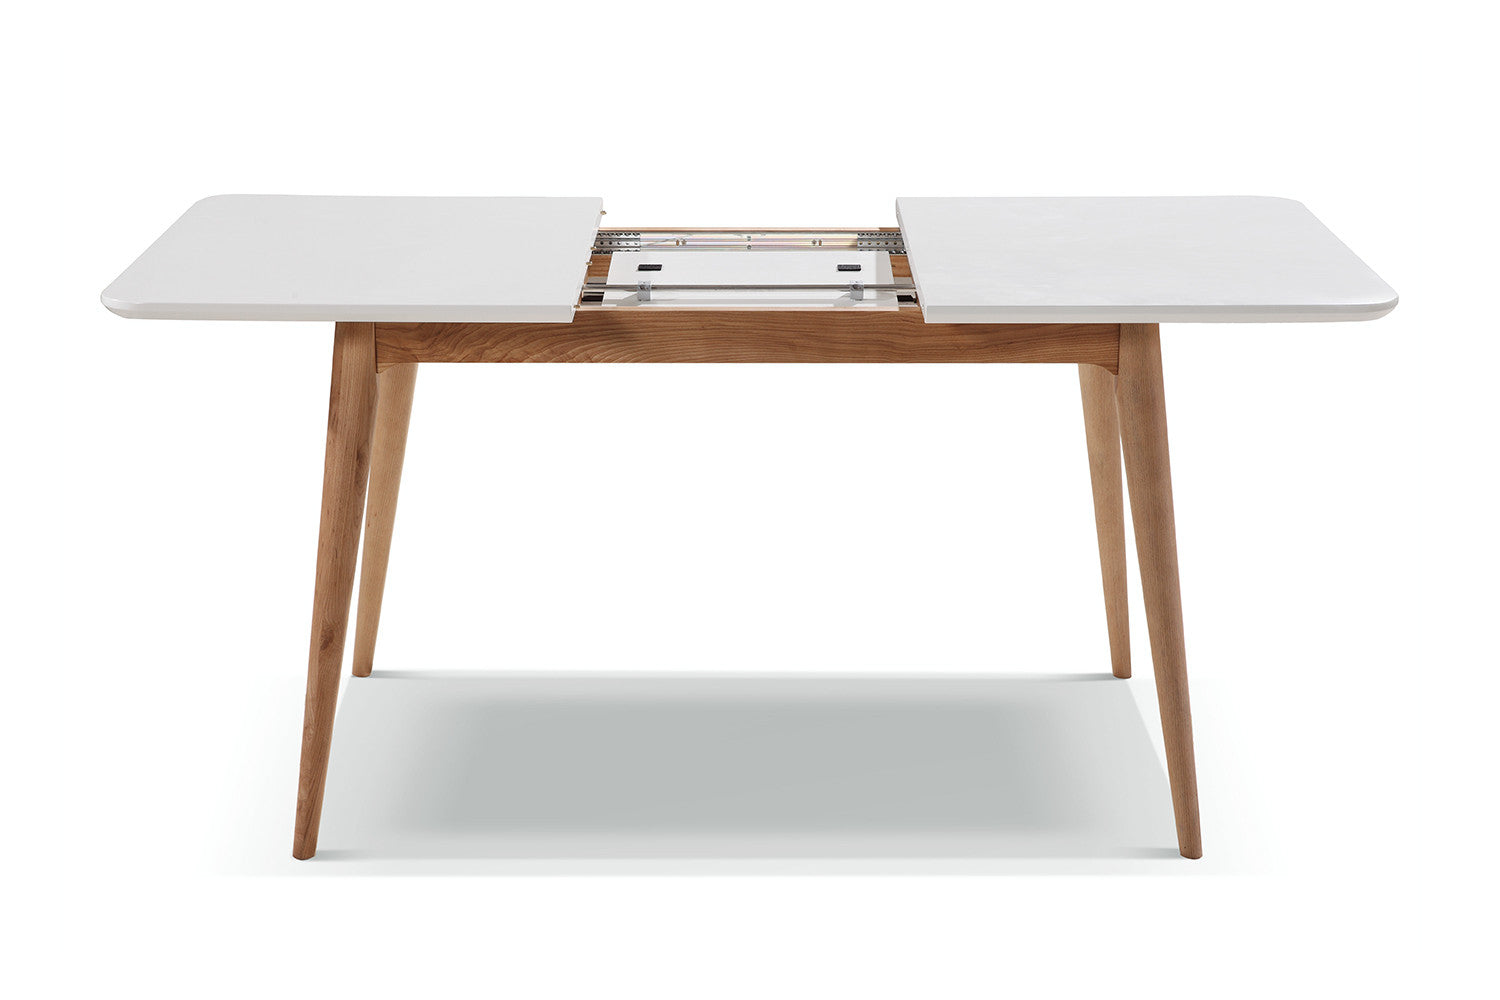 Table de cuisine extensible vintage breggia dewarens for Table salle a manger jimi